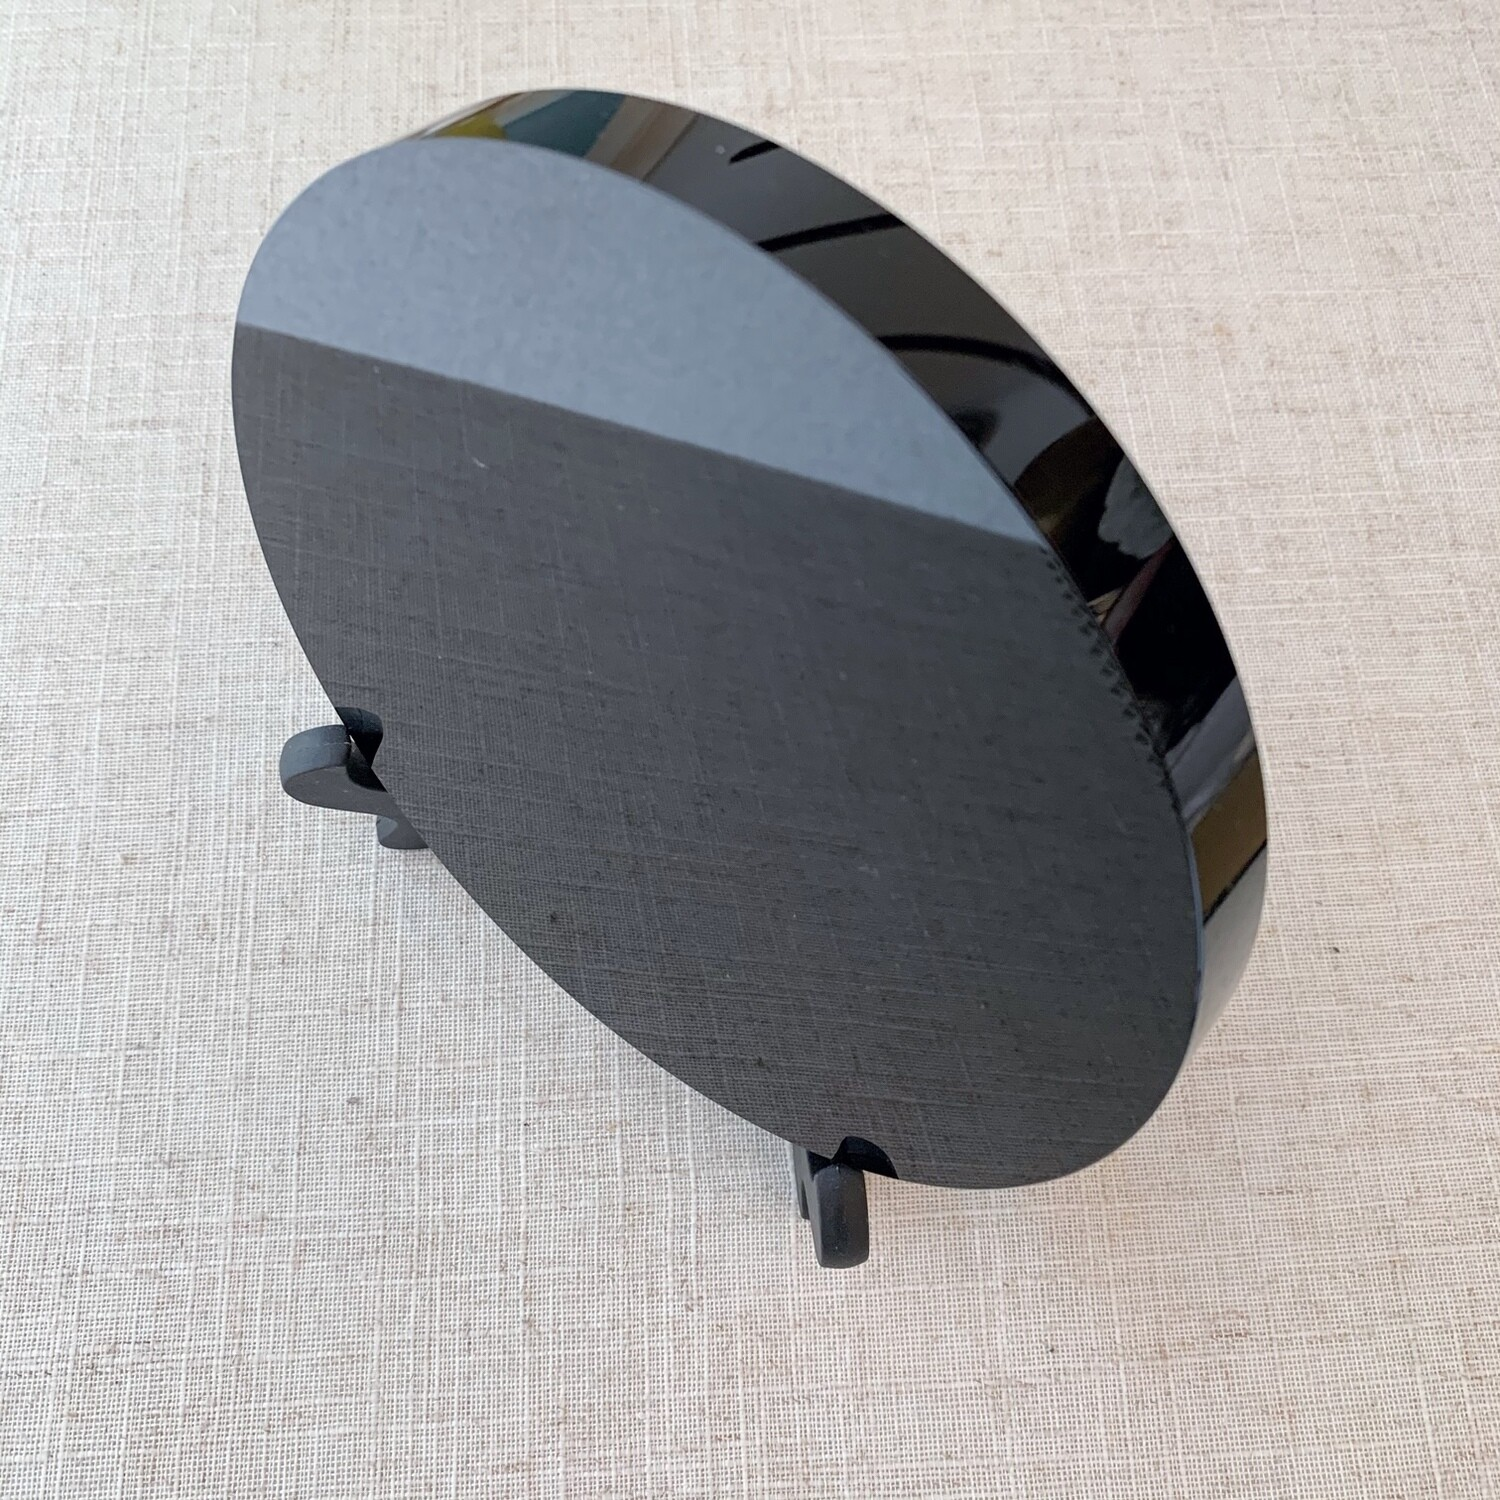 Black Obsidian Scrying Mirror with Stand